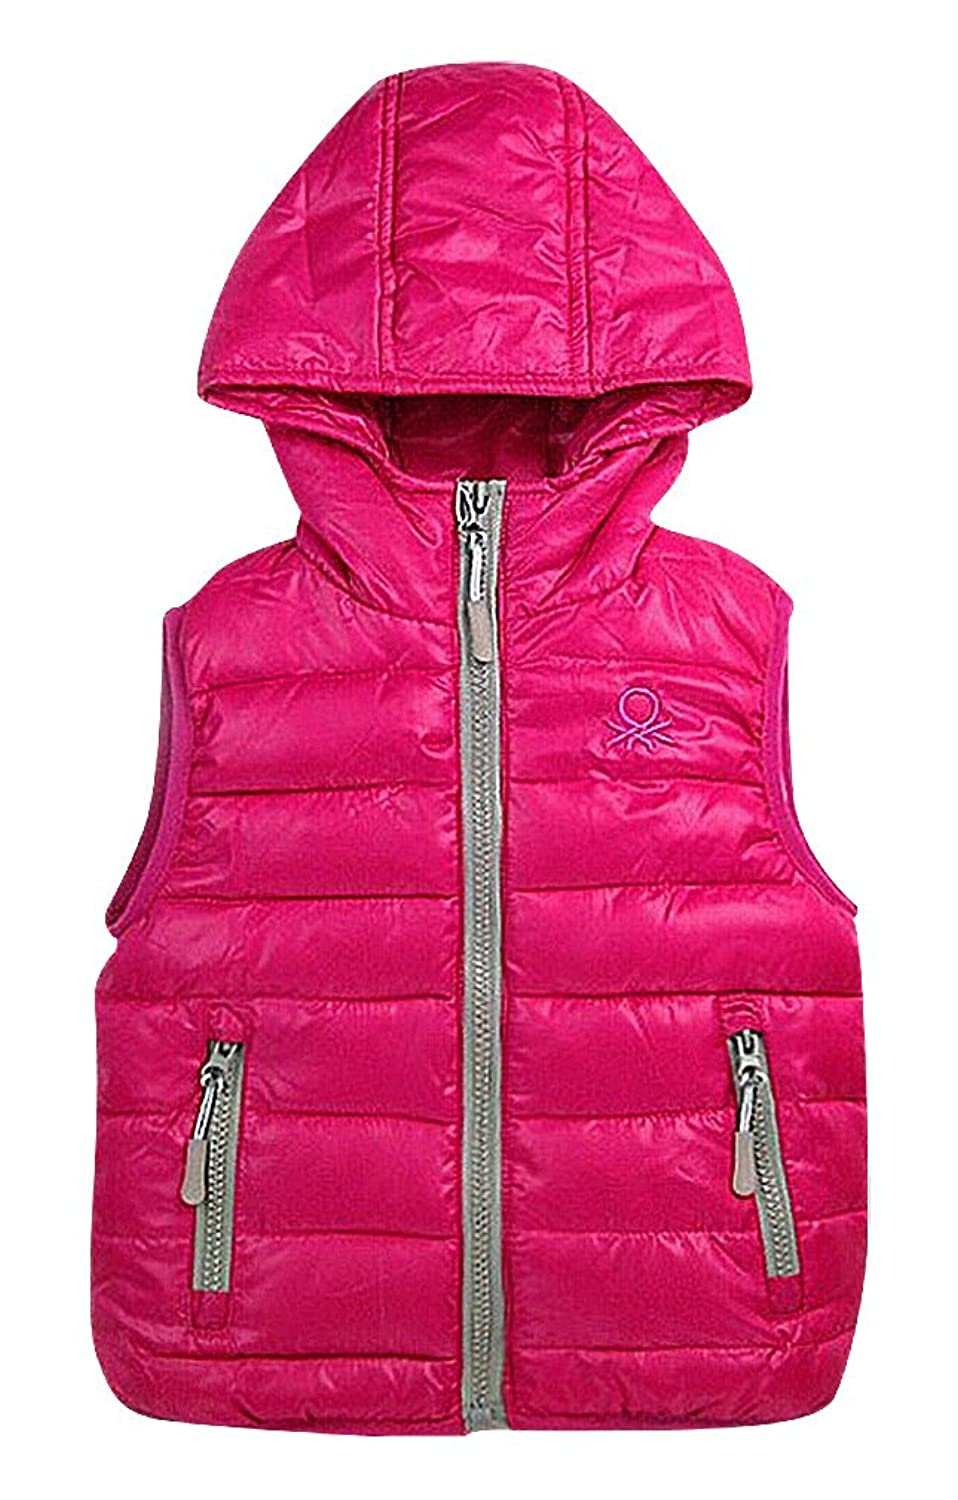 hot Sweety Kids 1 Color Contrast Piping Zipped Quilted Cotton Filled Hooded Vest save more